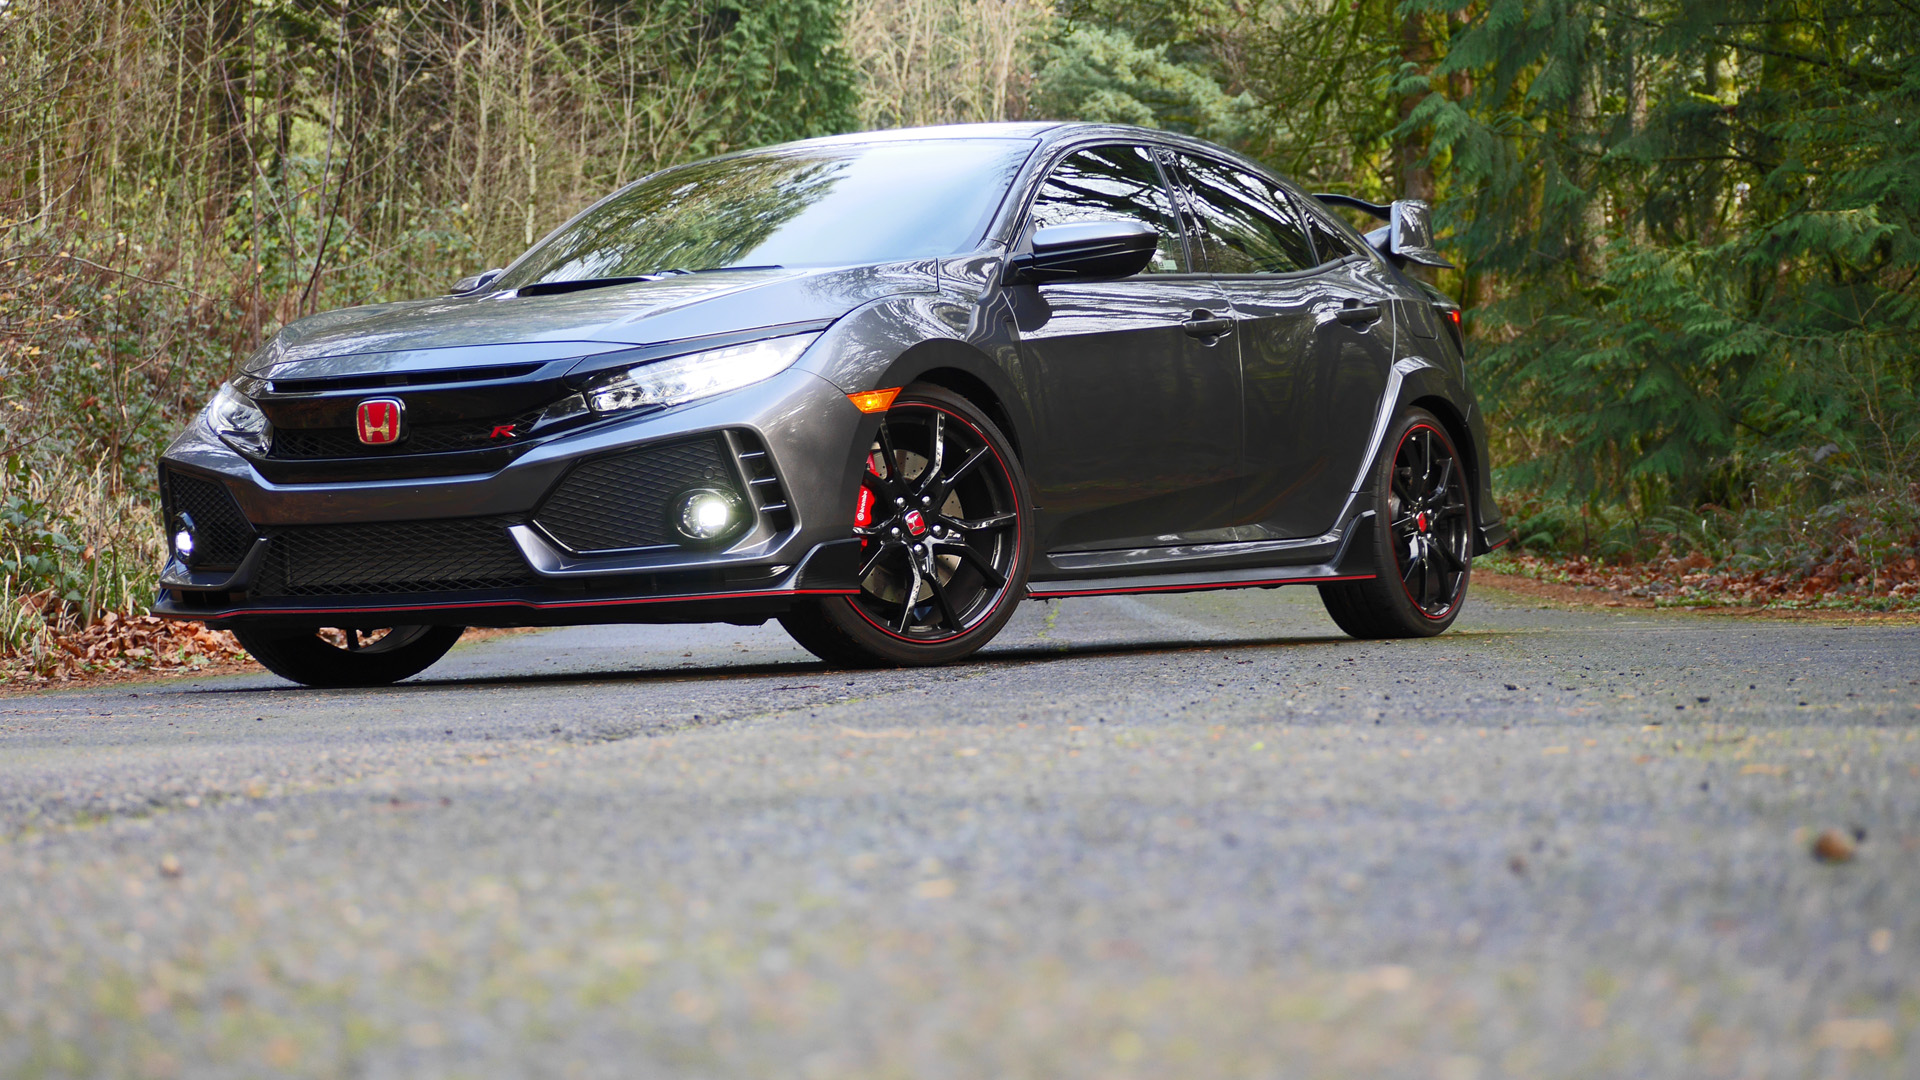 2019 Honda Civic Type R Review Performance Styling Driving Impressions Autoblog